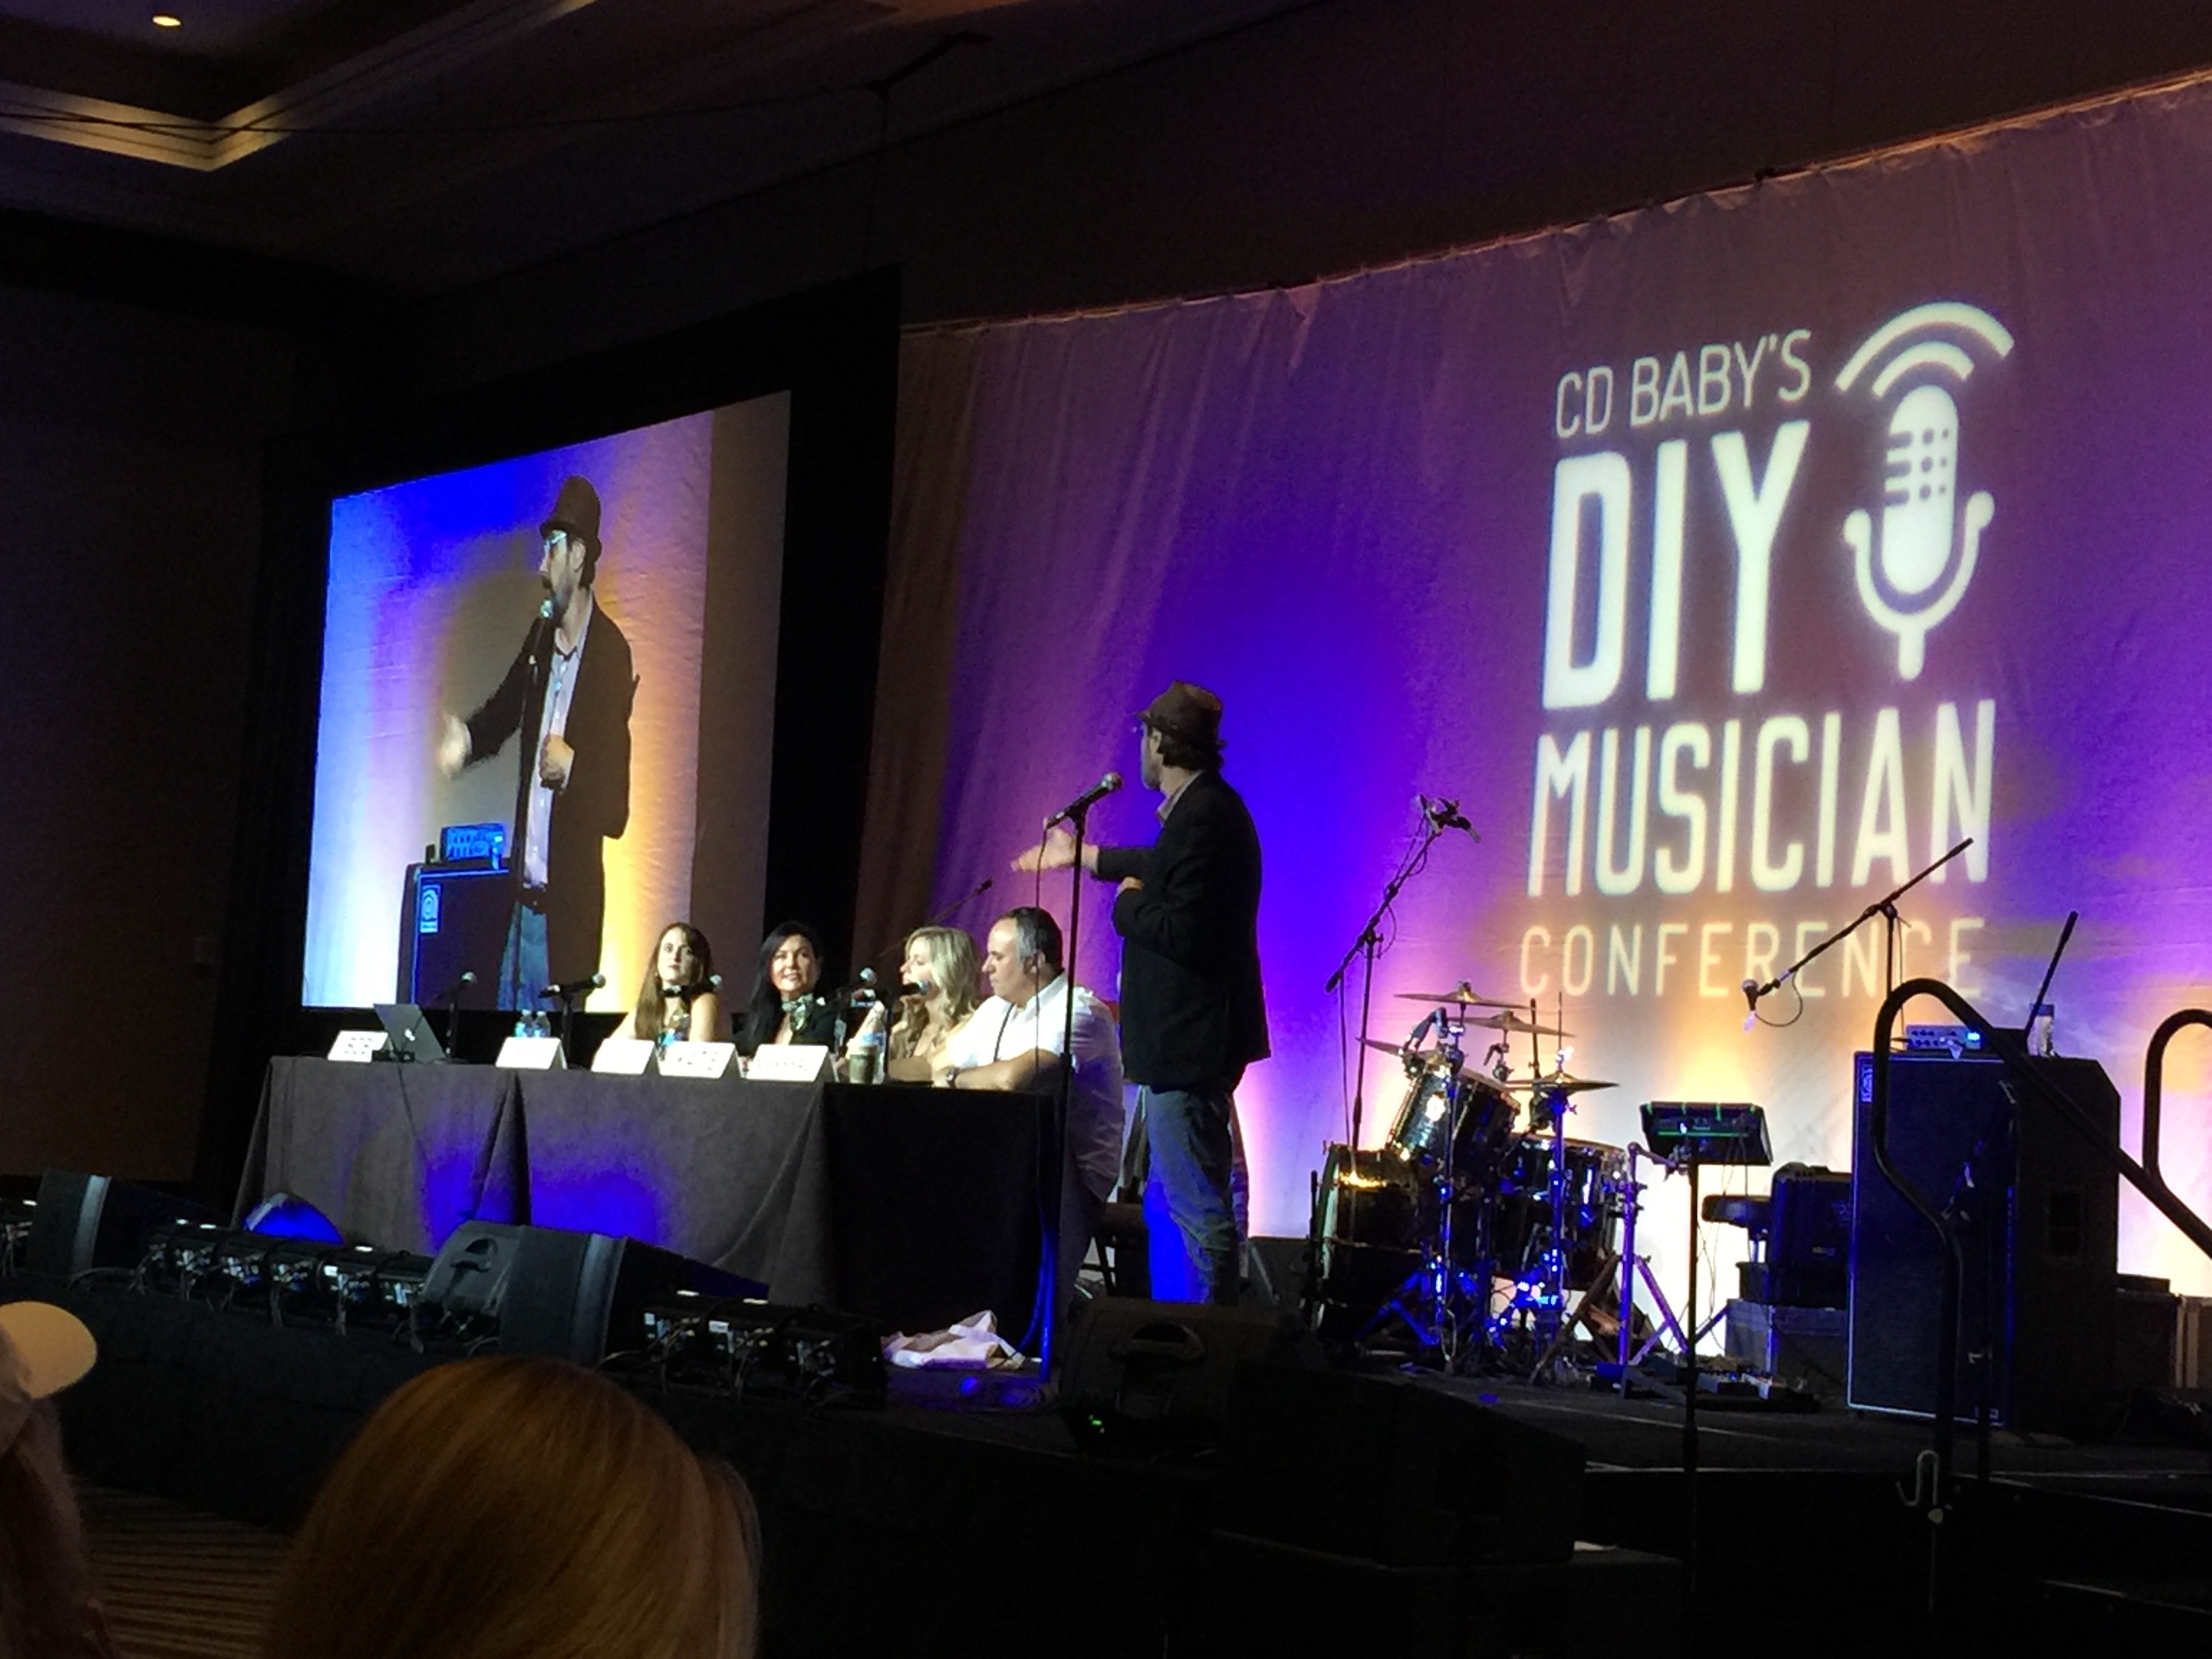 Photo of full stage for Song Pitch Session at CD Baby's DIY Musicians Conference 2017 in Nashville, Tennessee